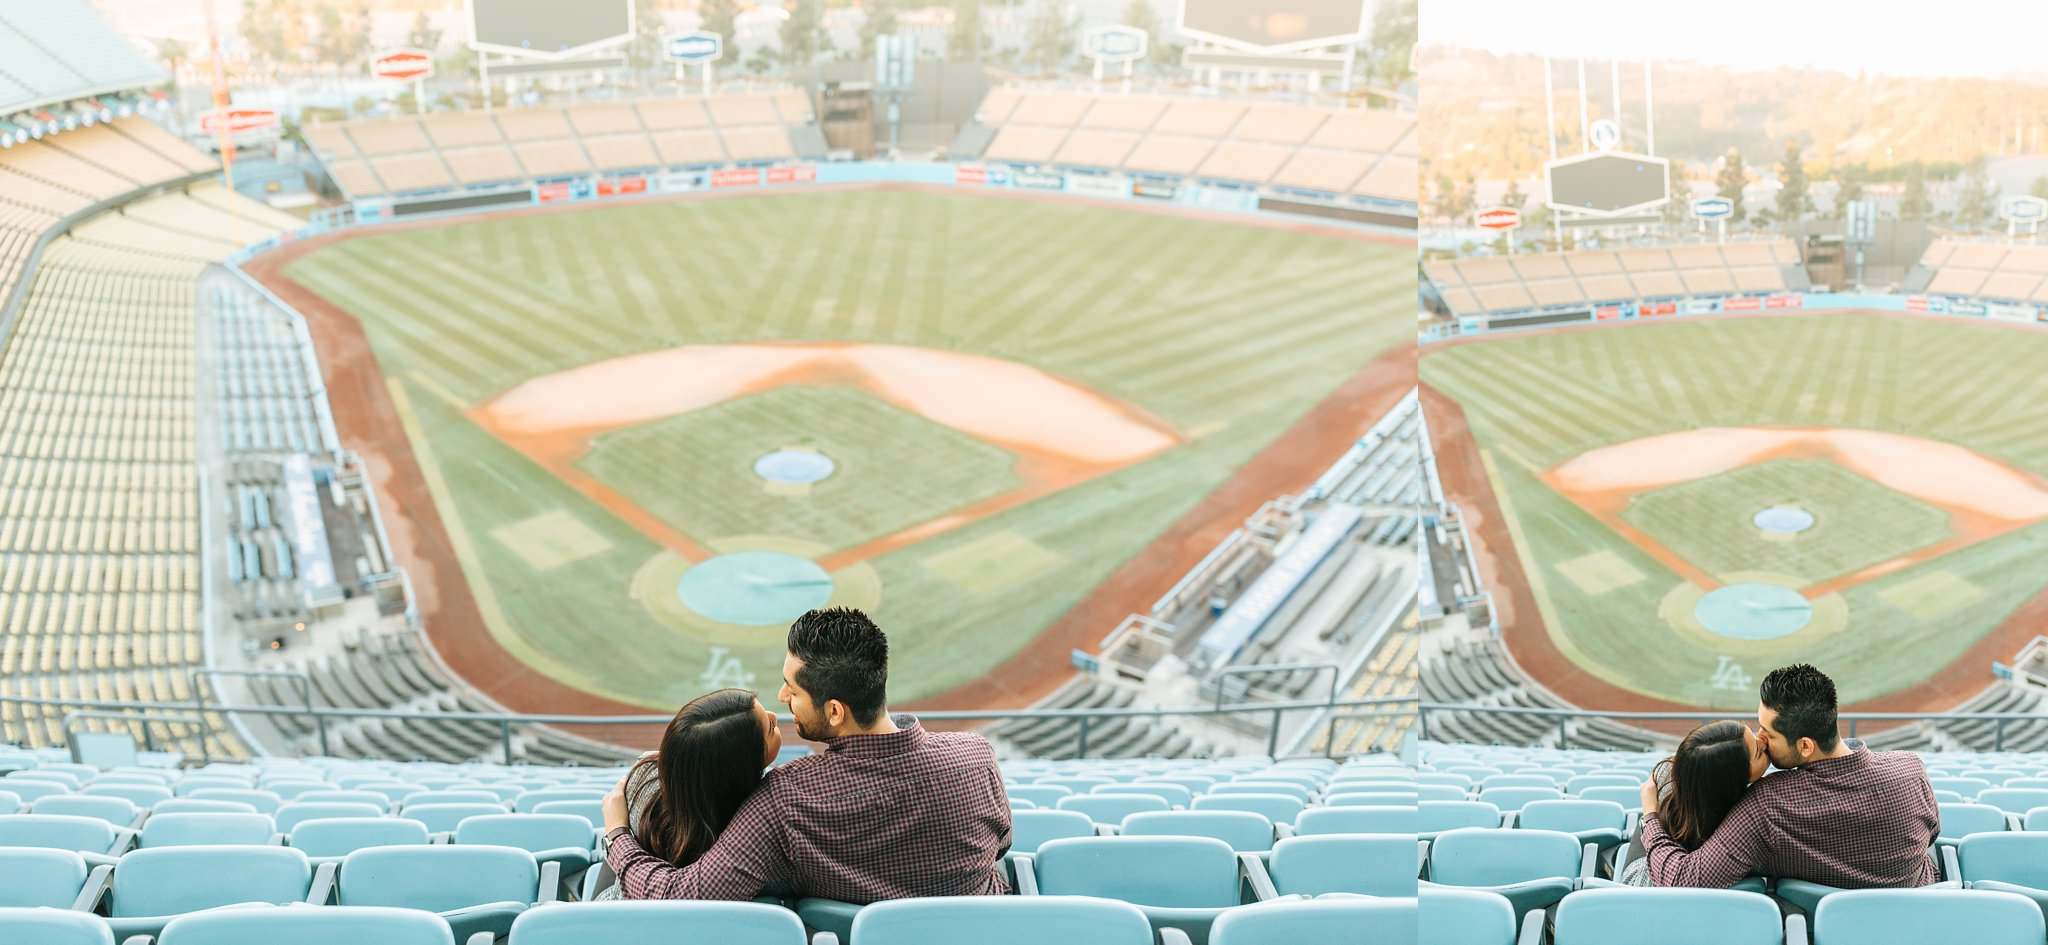 Dodger Stadium Engagement Session - Dodger Fans - Boys in Blue - http://brittneyhannonphotography.com